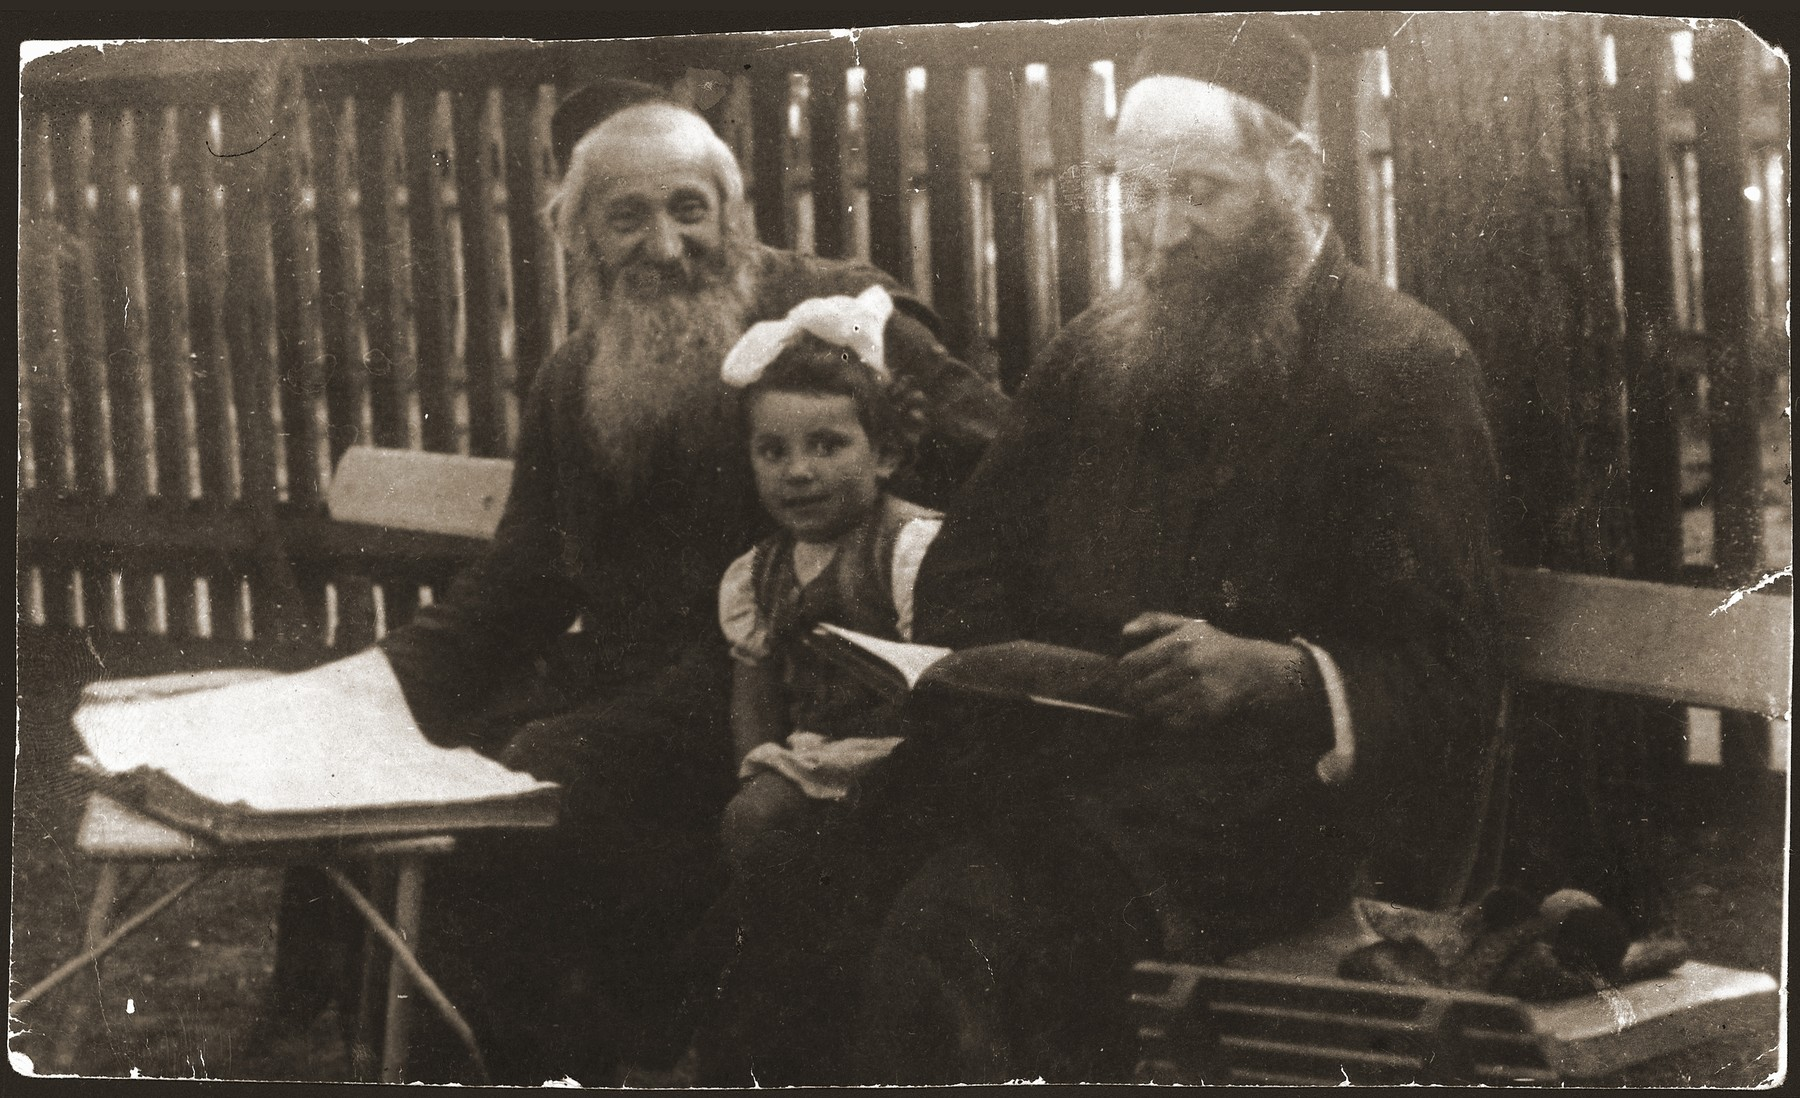 Two kosher slaughterers in Otwock study a page of the Talmud together.  Pictured are the brothers, Chaim (left) and Herschel (right) Froman.  Between them is Chaim's daughter Bella (the wife of the donor).